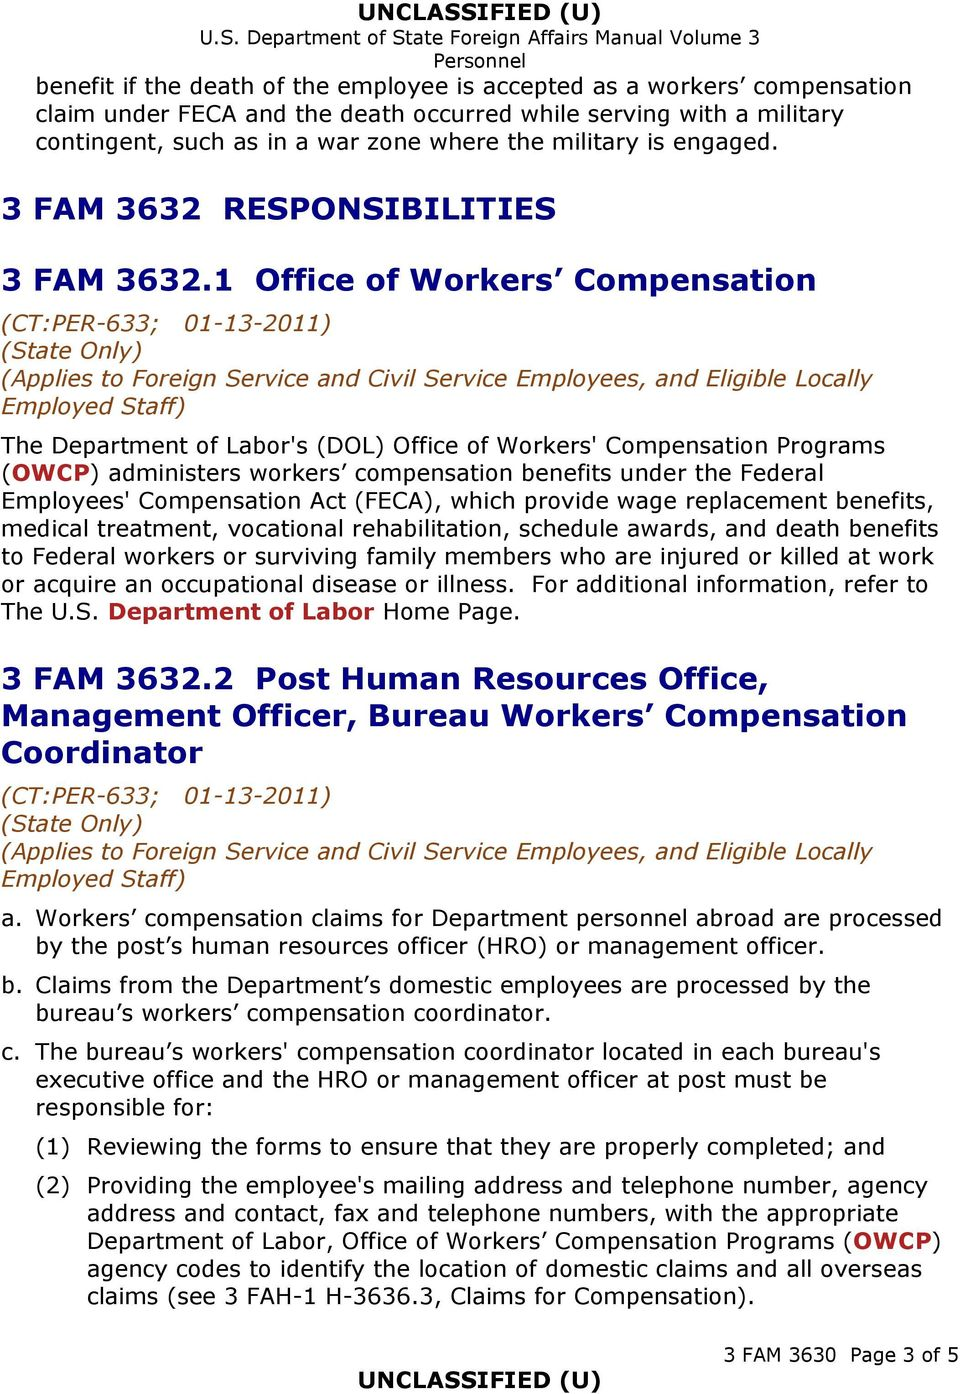 1 Office of Workers Compensation The Department of Labor's (DOL) Office of Workers' Compensation Programs (OWCP) administers workers compensation benefits under the Federal Employees' Compensation